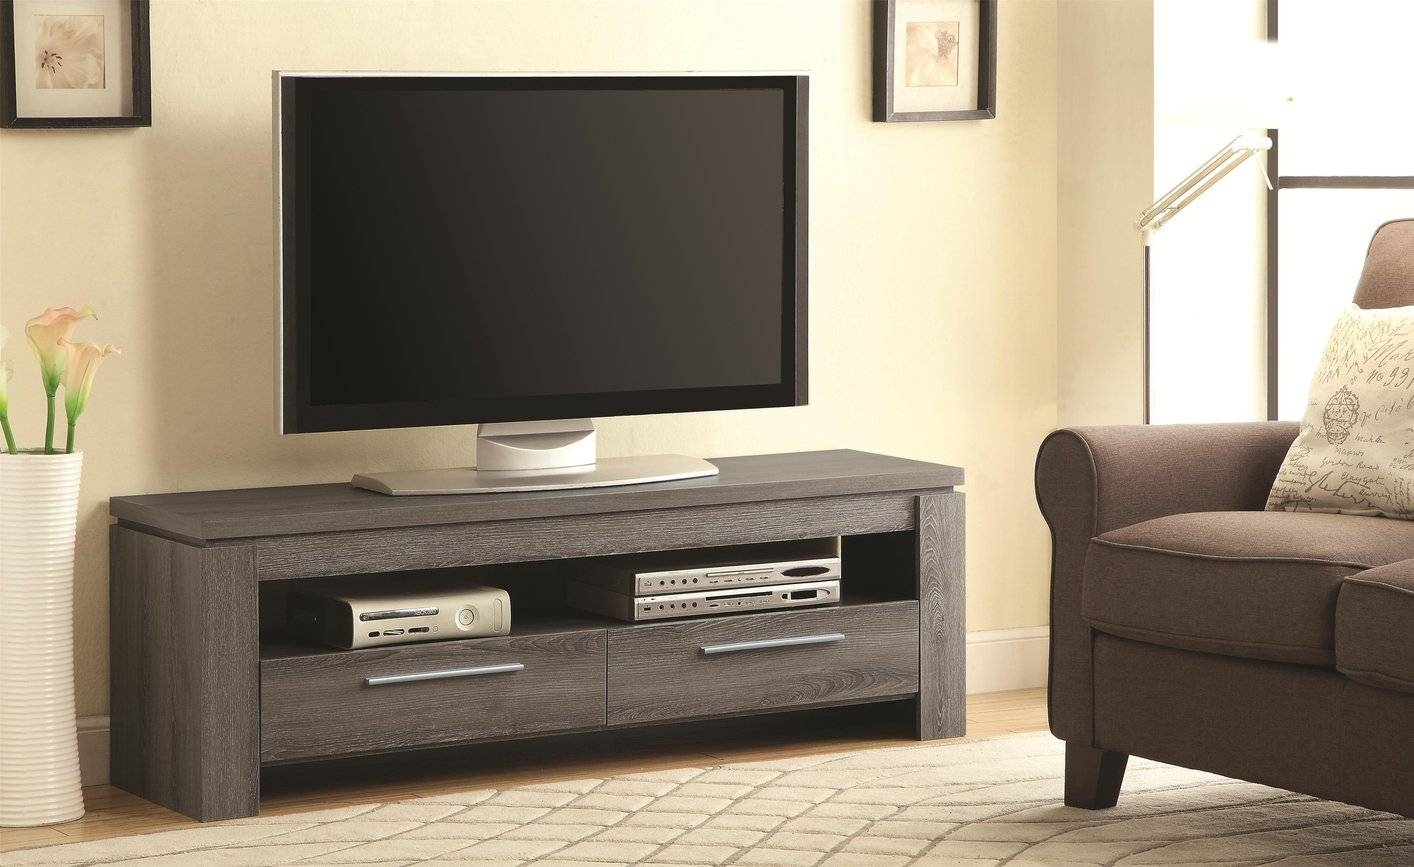 Grey Wood Tv Stand - Steal-A-Sofa Furniture Outlet Los Angeles Ca with regard to Grey Wood Tv Stands (Image 2 of 15)